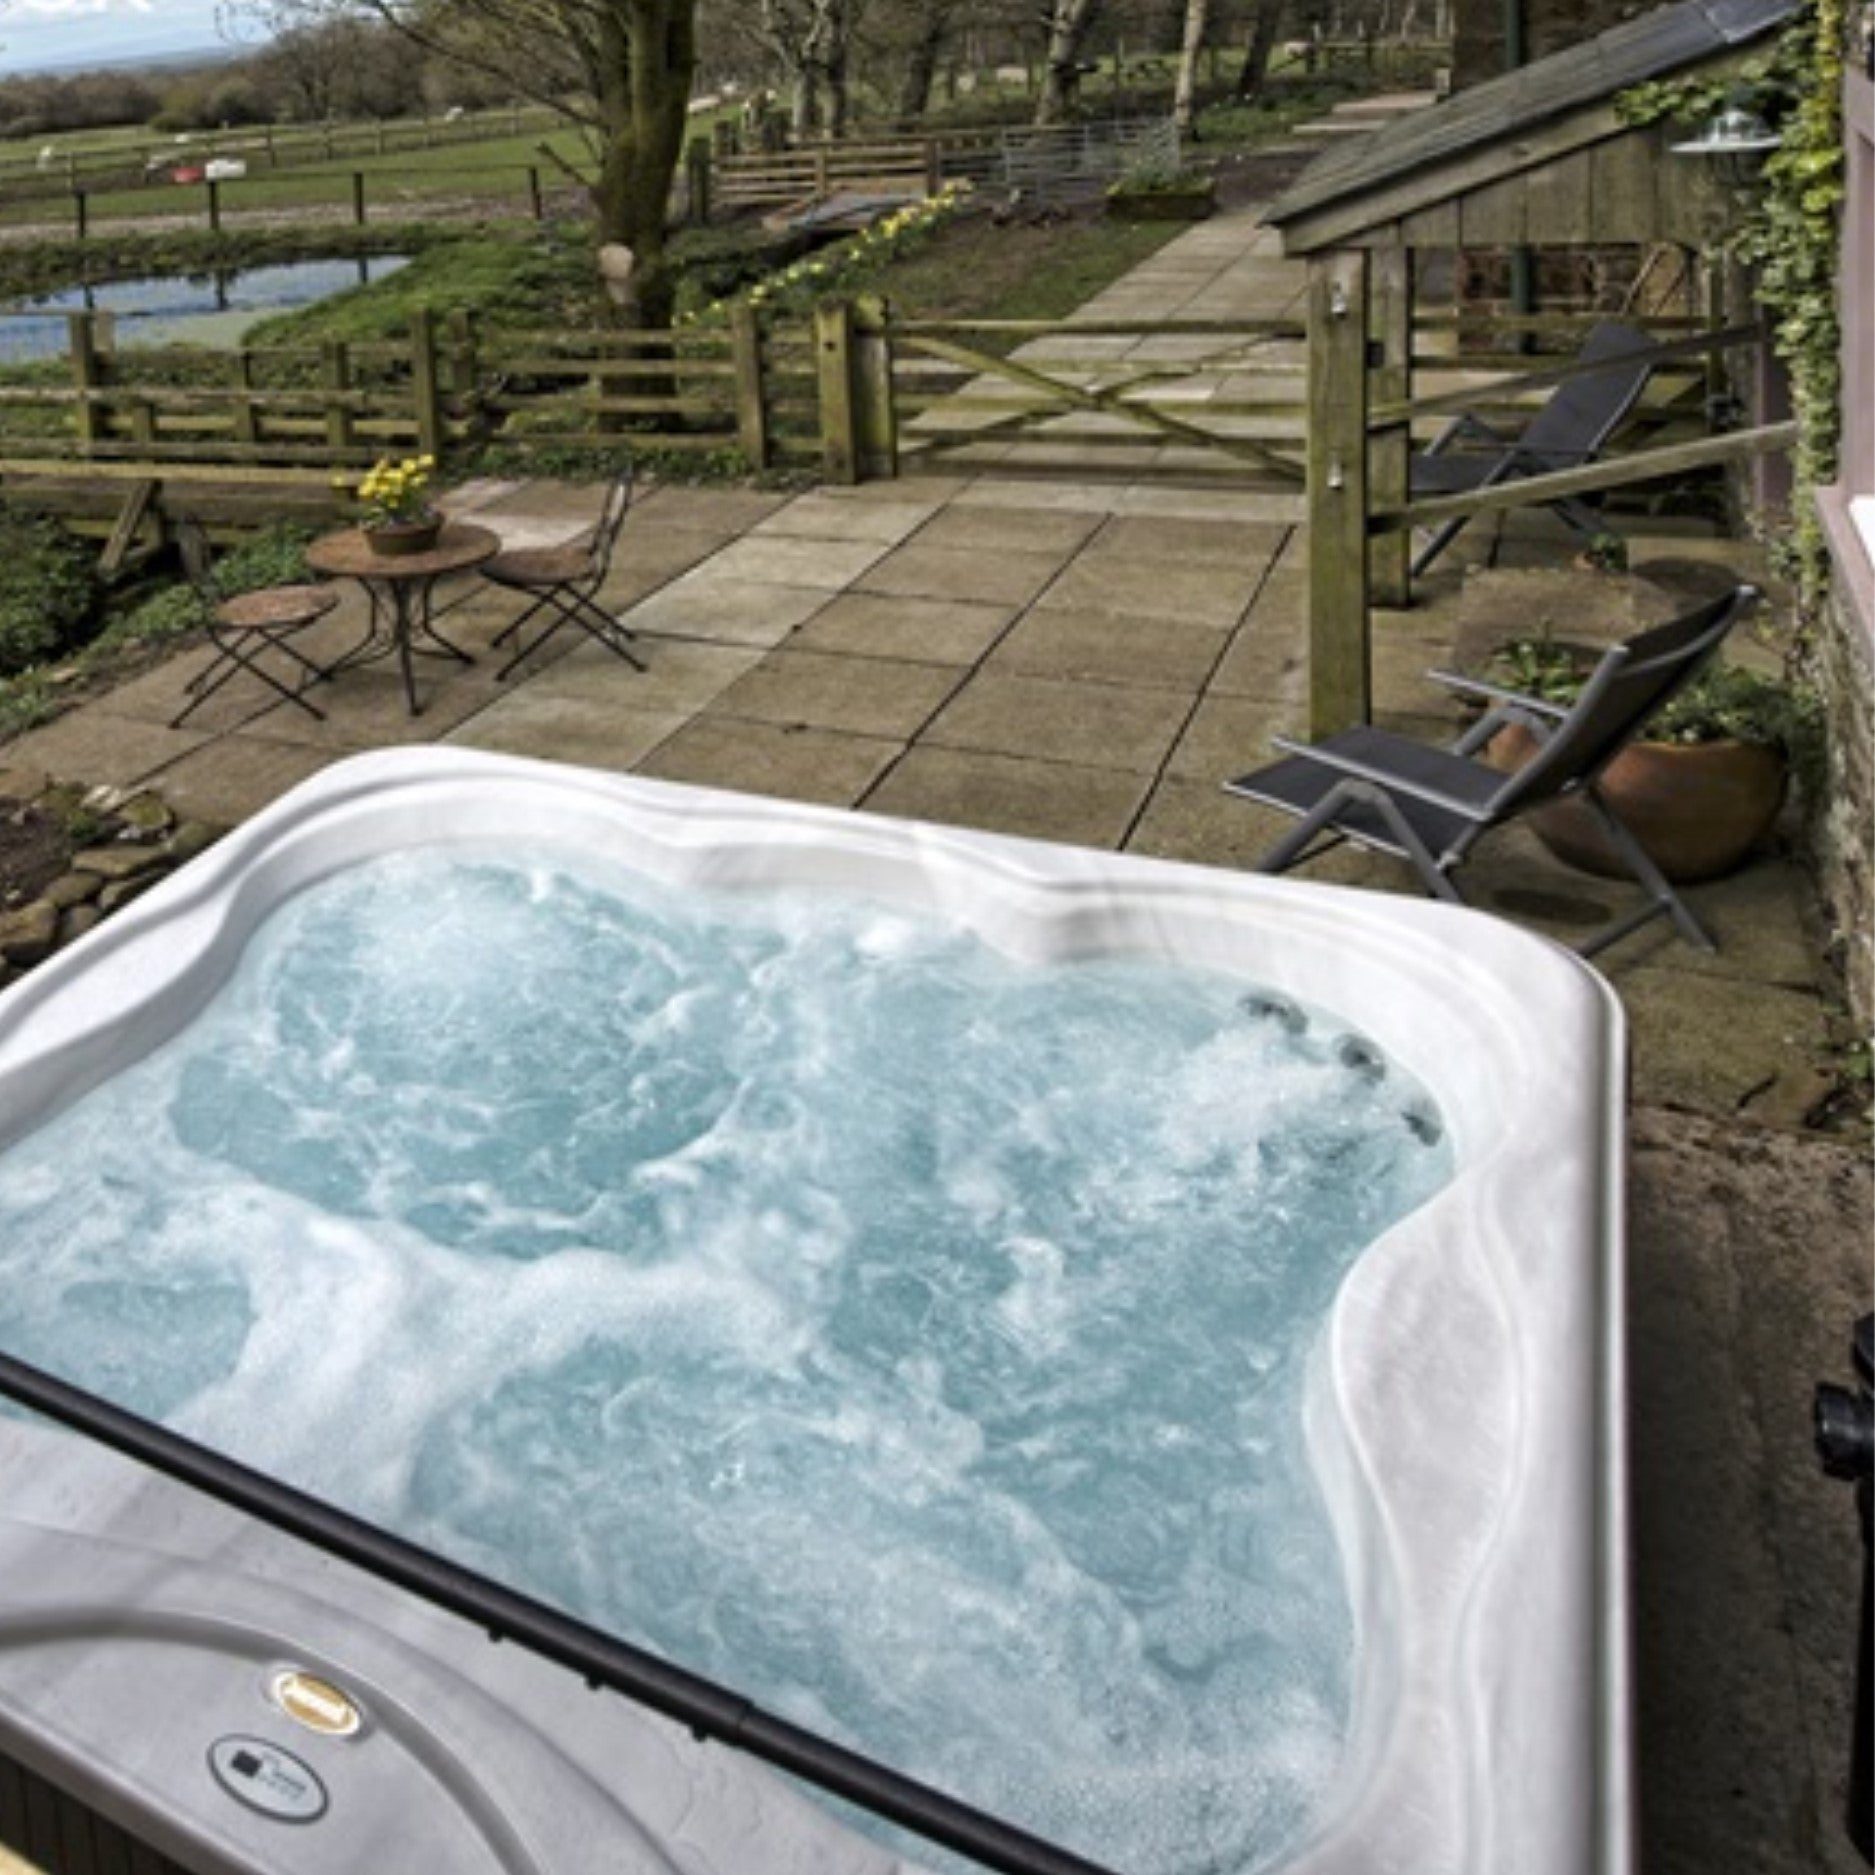 Jacuzzi Lodge Hot Tub Outdoor Living For And Spa Parts Spares Accessories Packs Equipment M